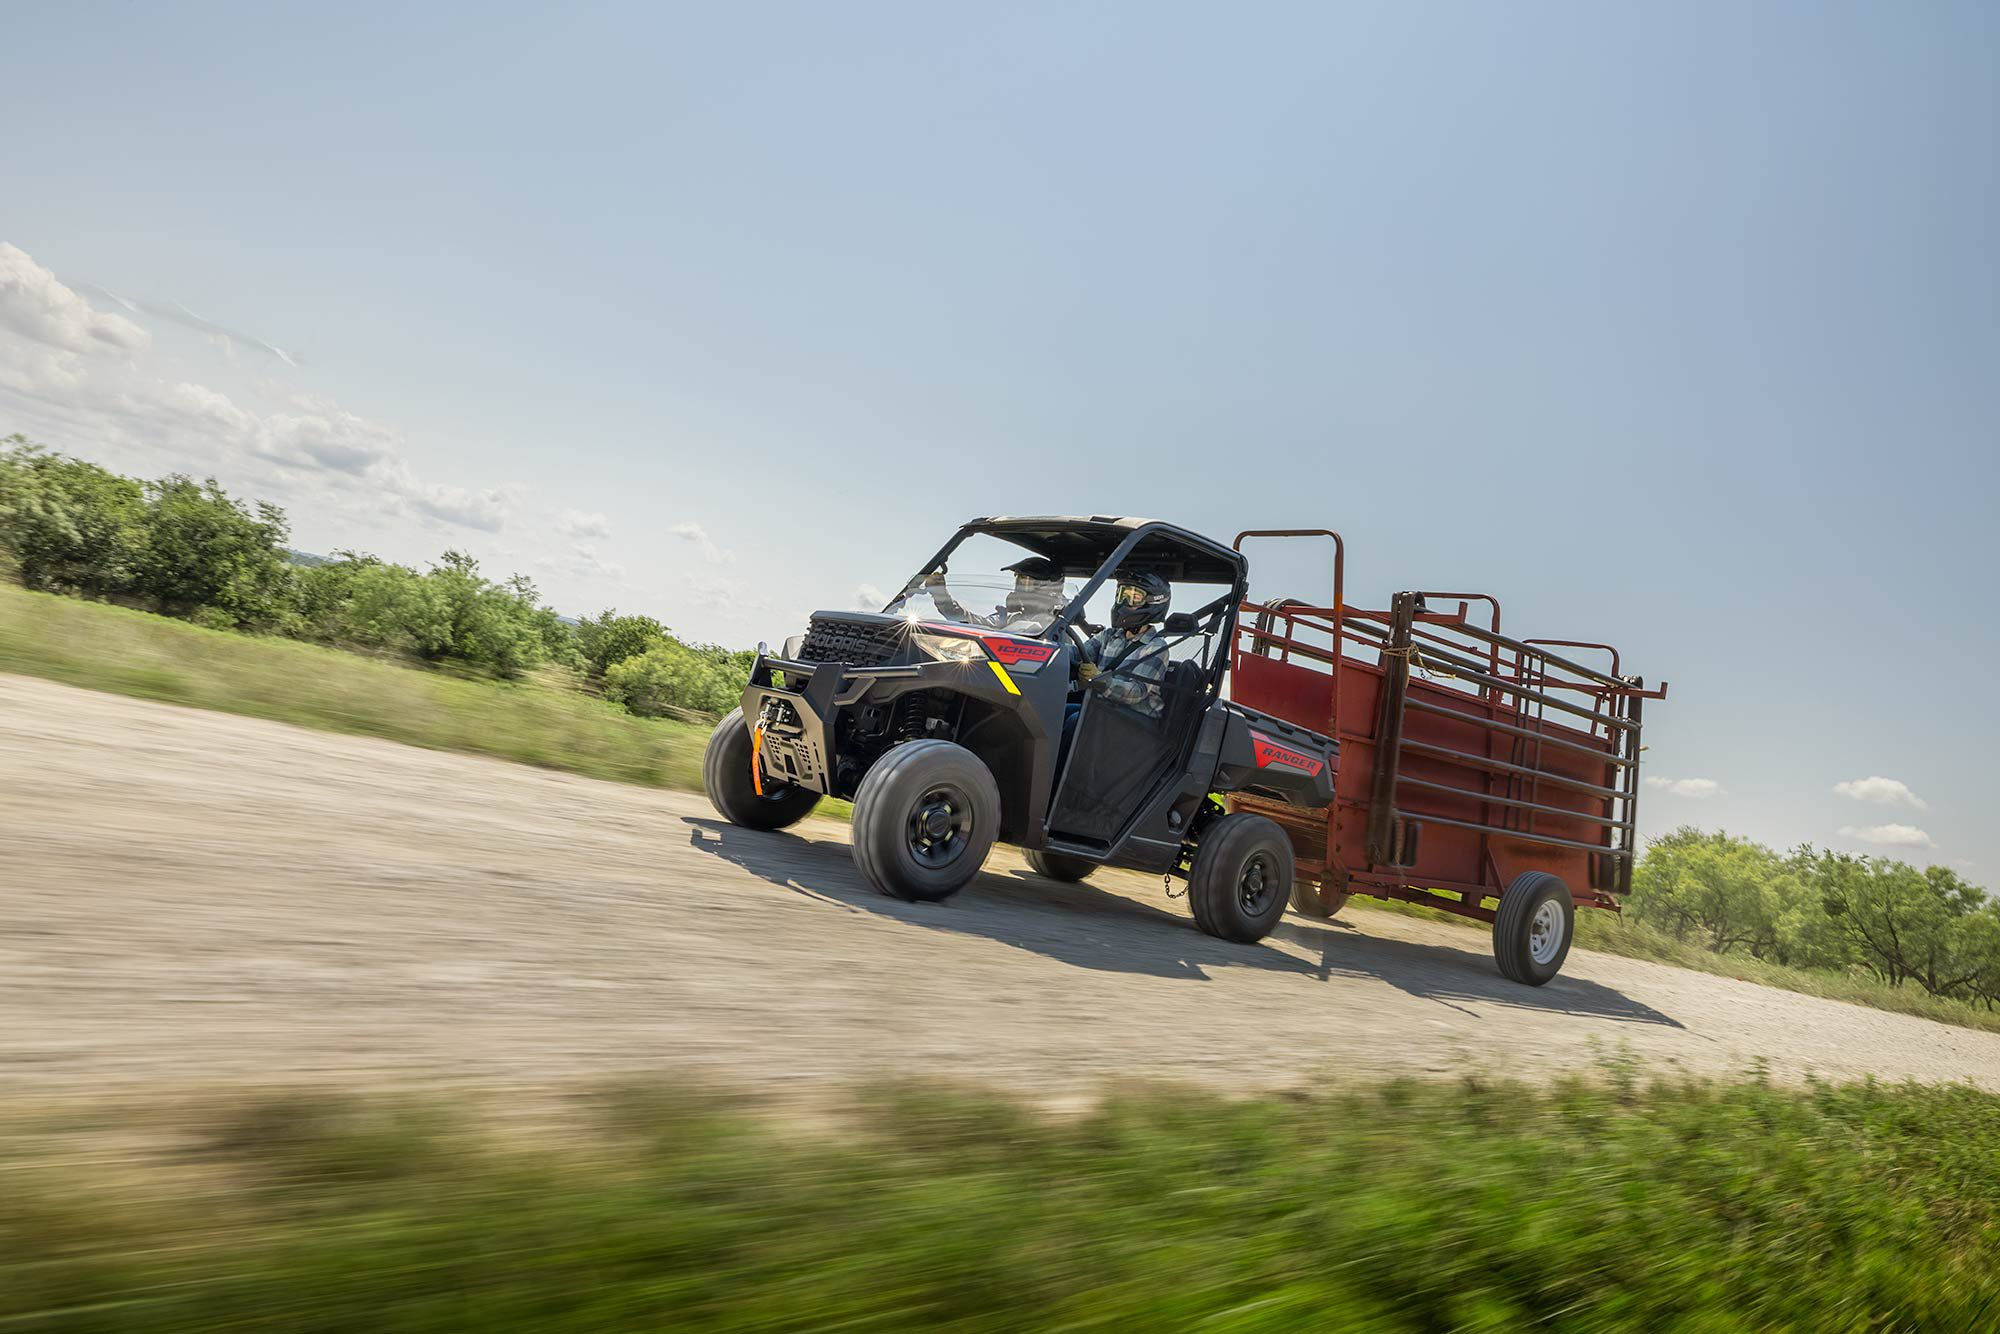 Happy to work, the Ranger 1000 will do more than some pickup trucks.